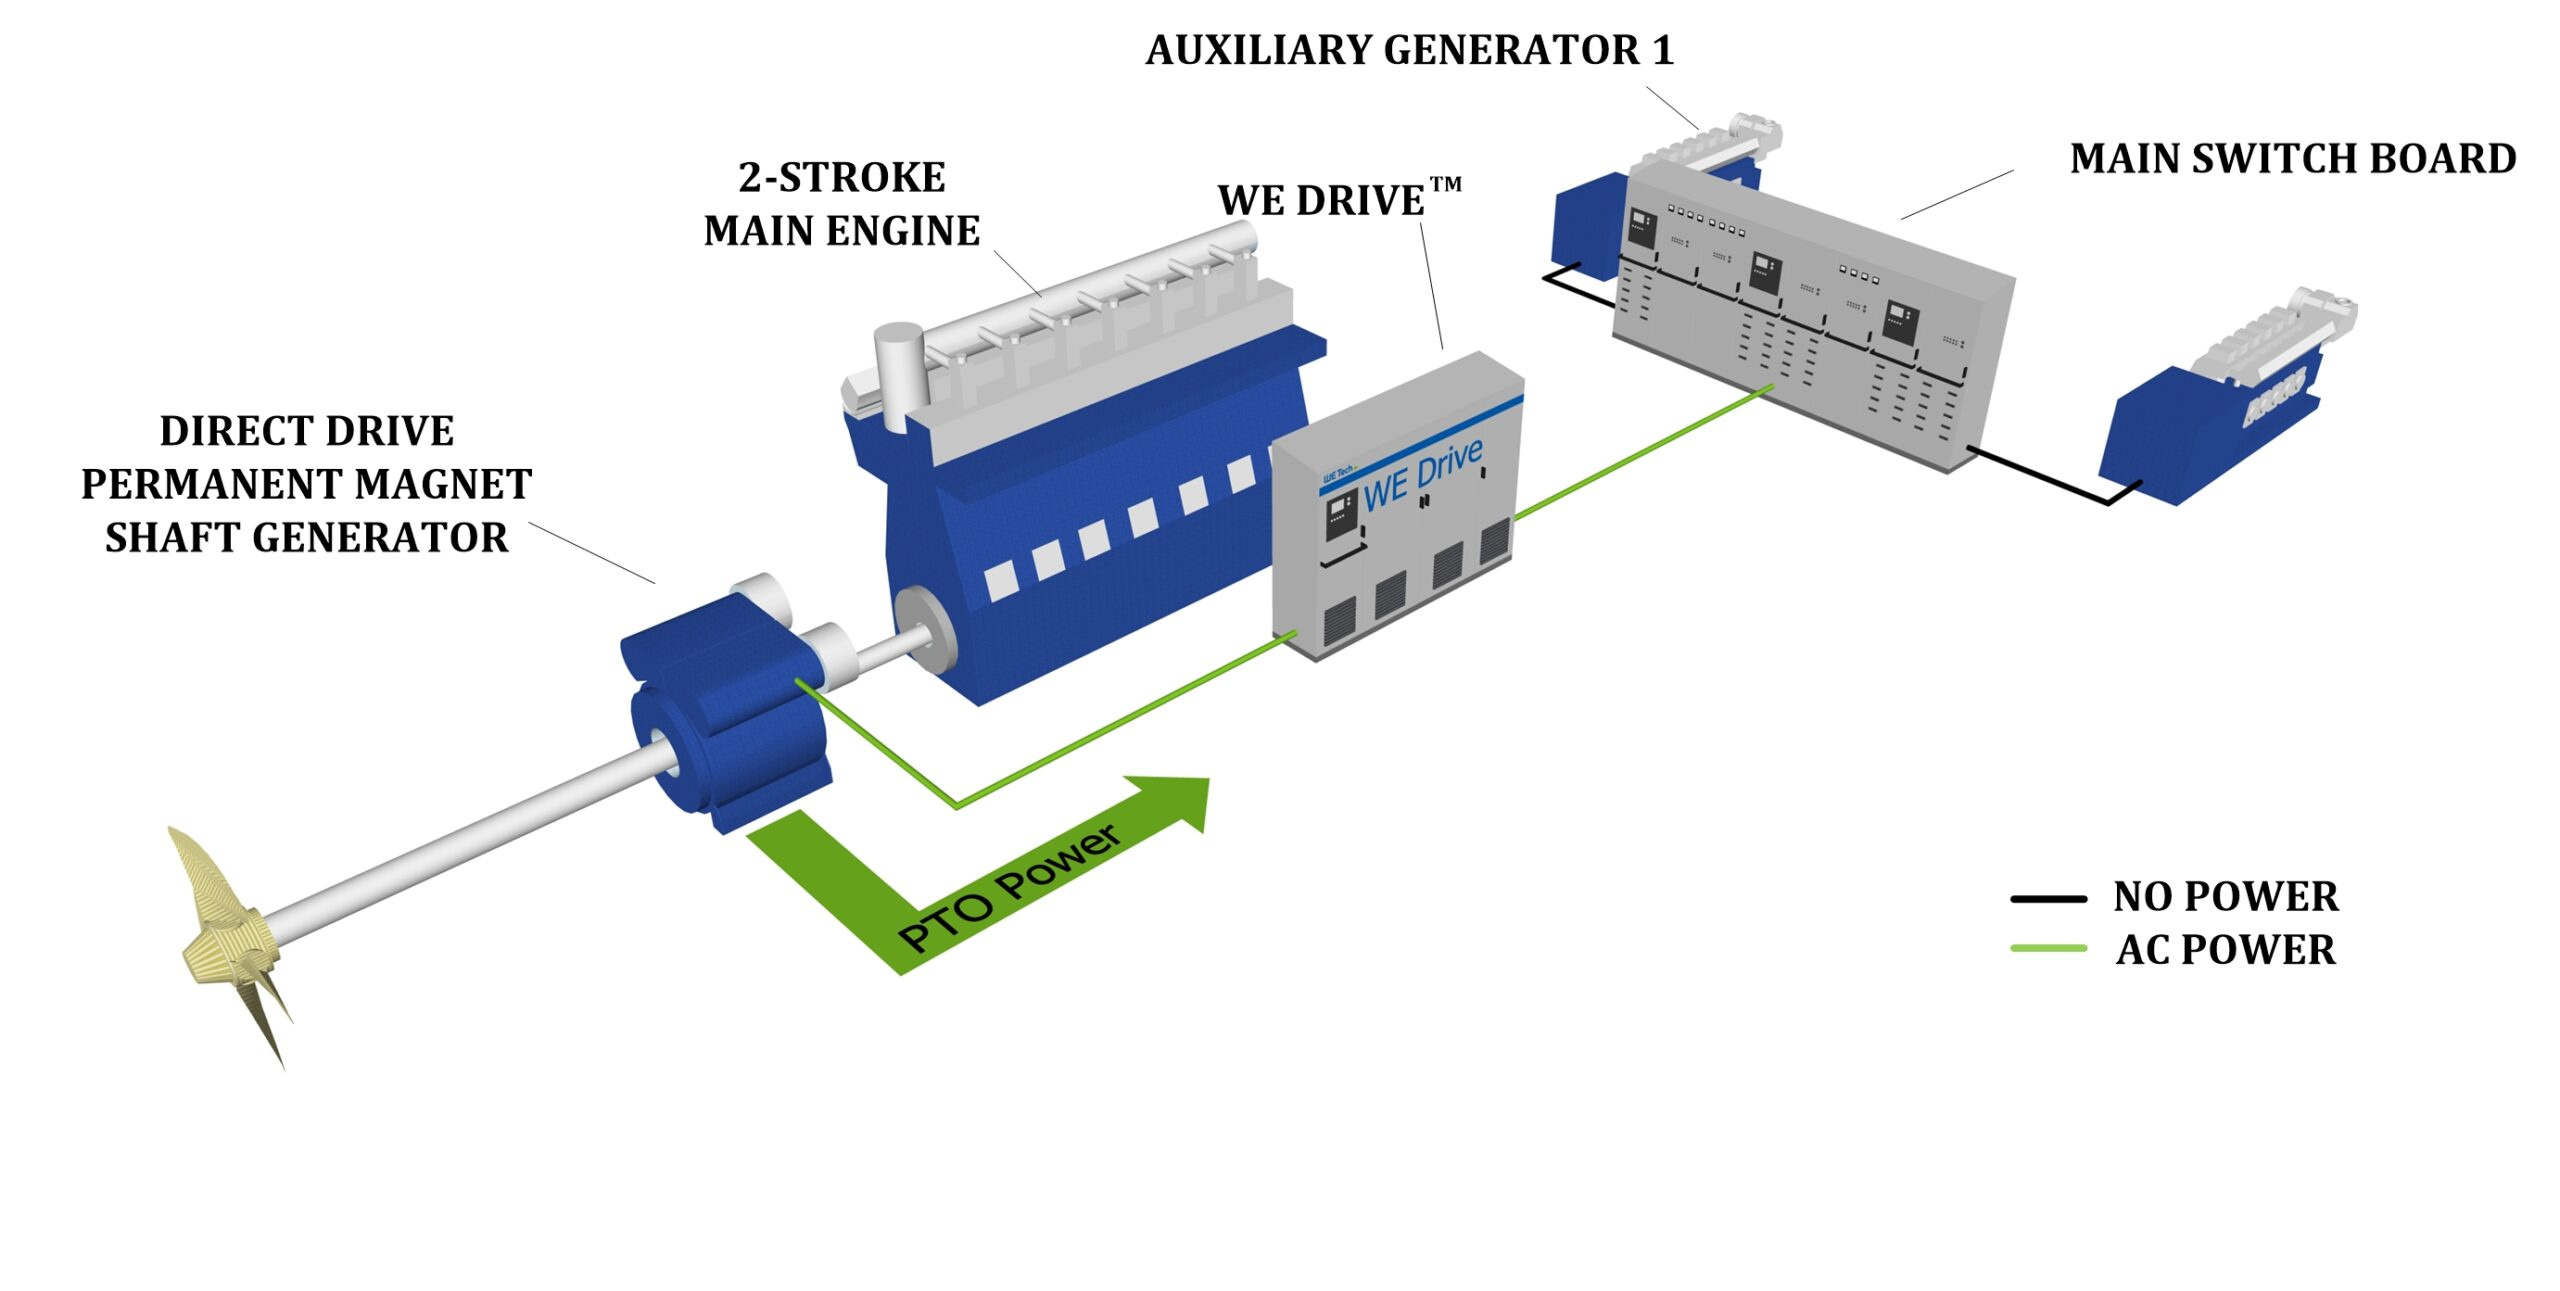 Save fuel and cut costs by using a variable speed shaft generator for economical operations.